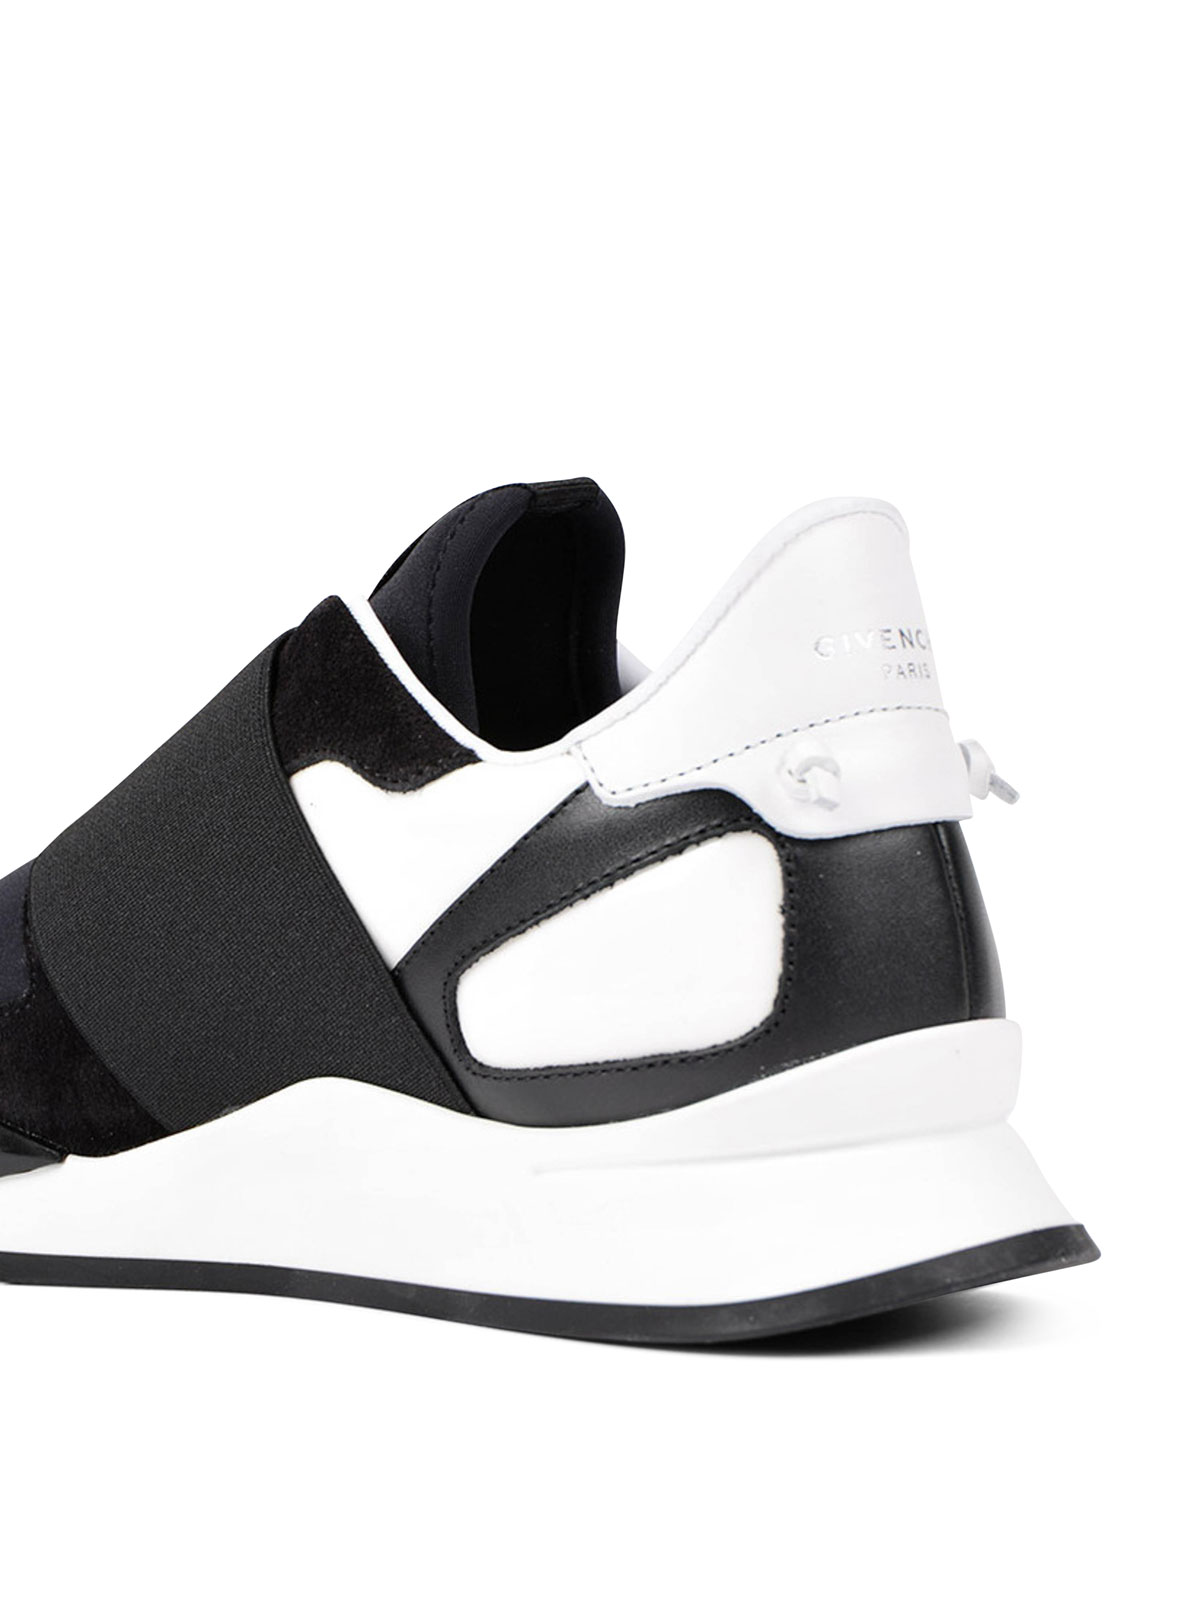 Givenchy - Elastic Runner sneakers